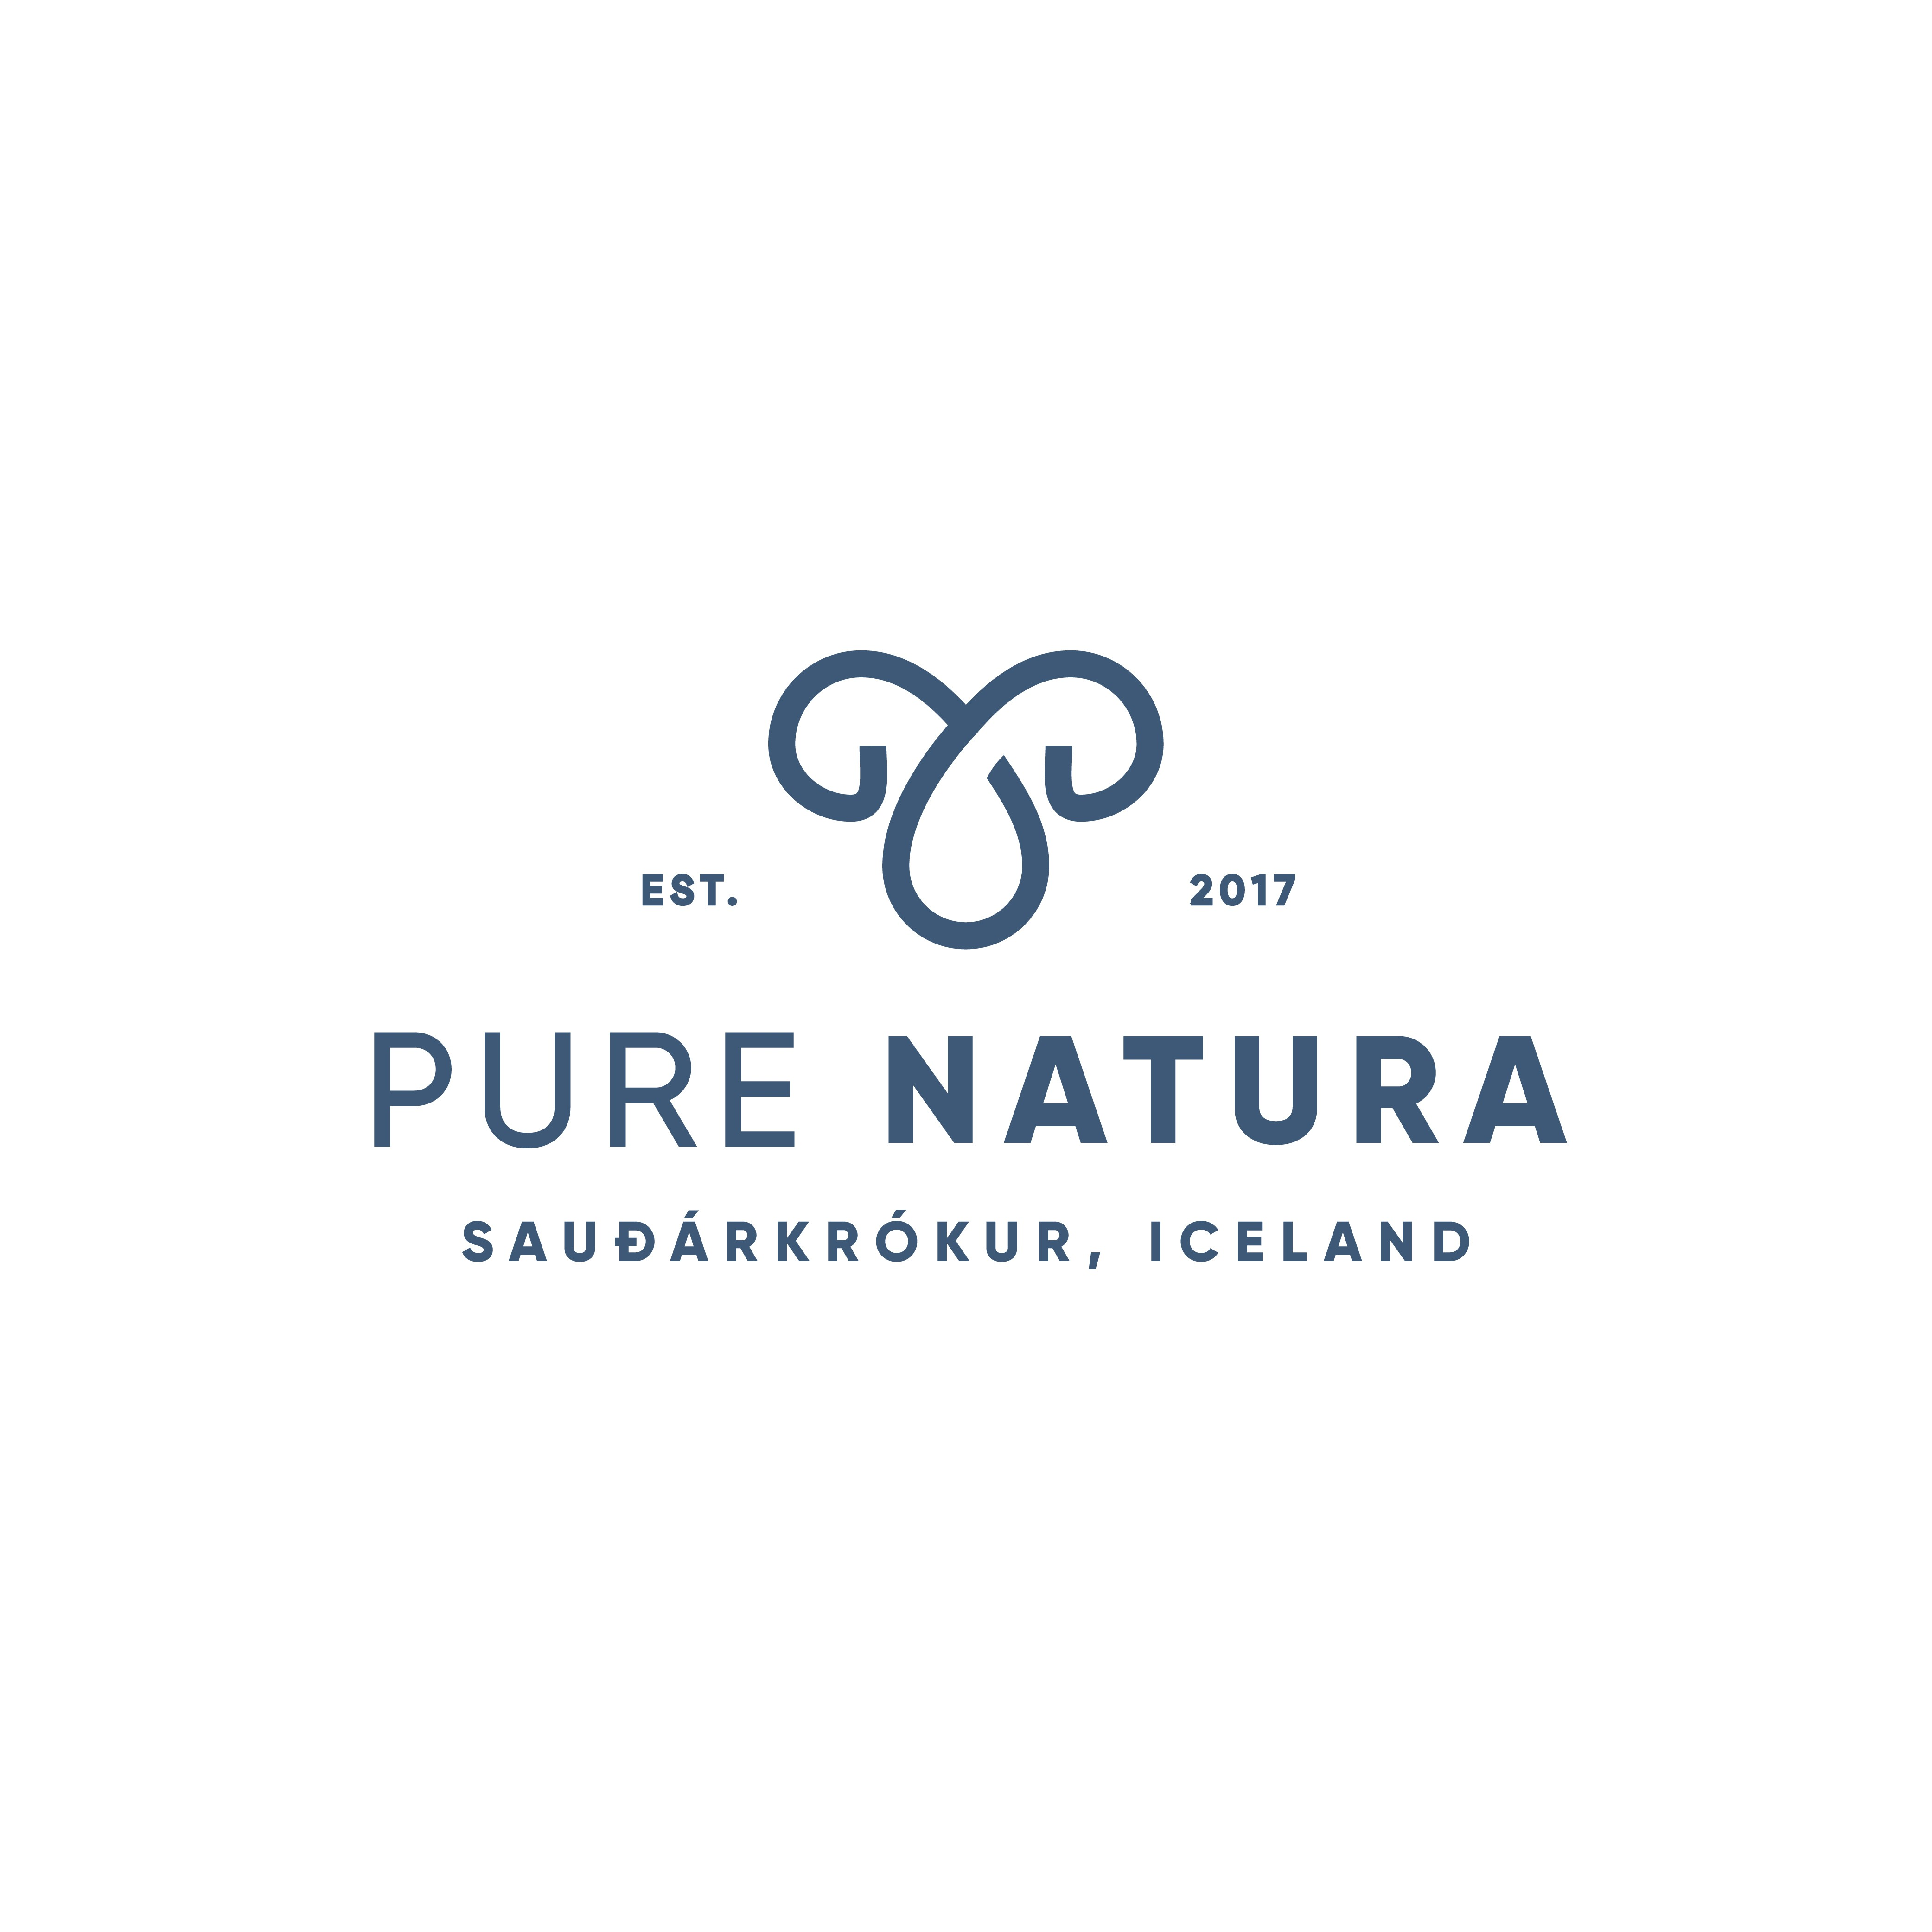 New logo for a food based Icelandic supplement company